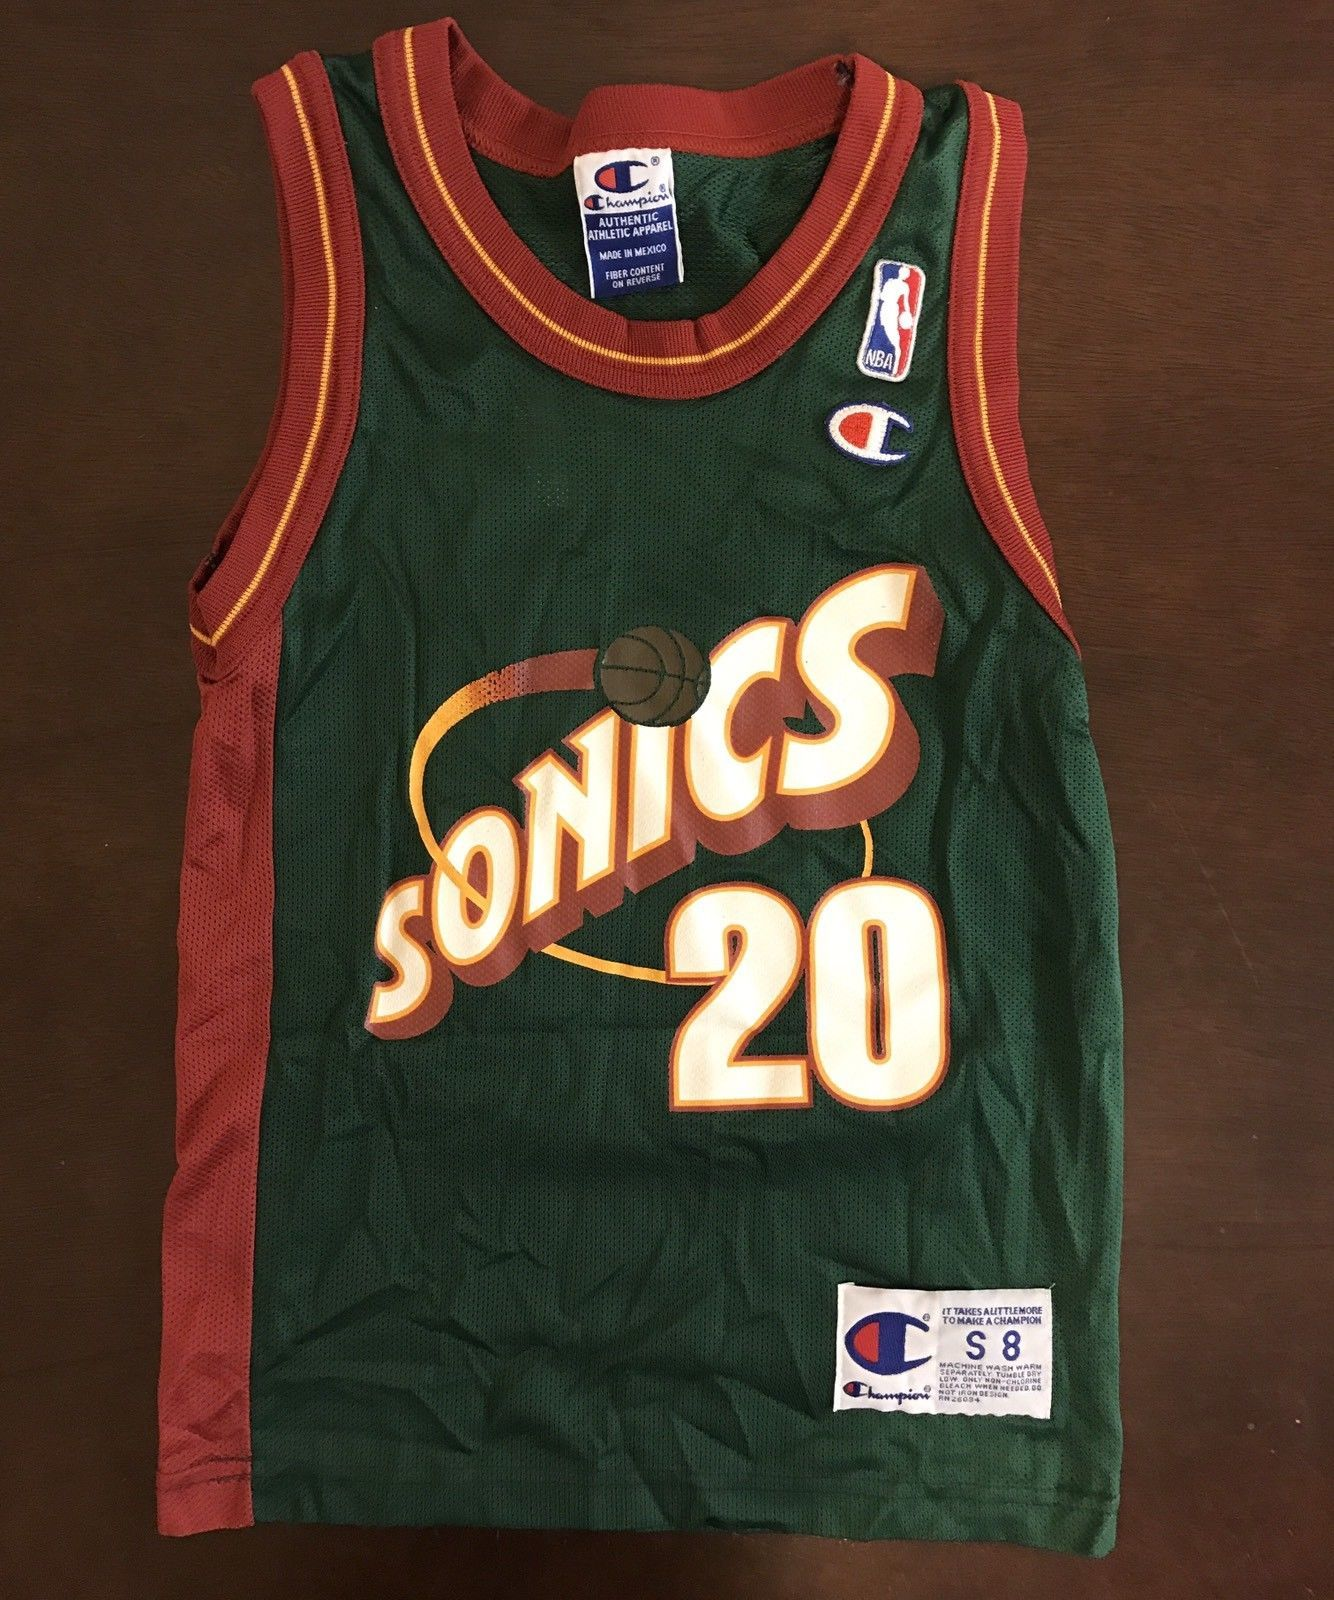 brand new 1c215 26728 Picture 1 of 5 | Basketball Jerseys | Basketball jersey ...